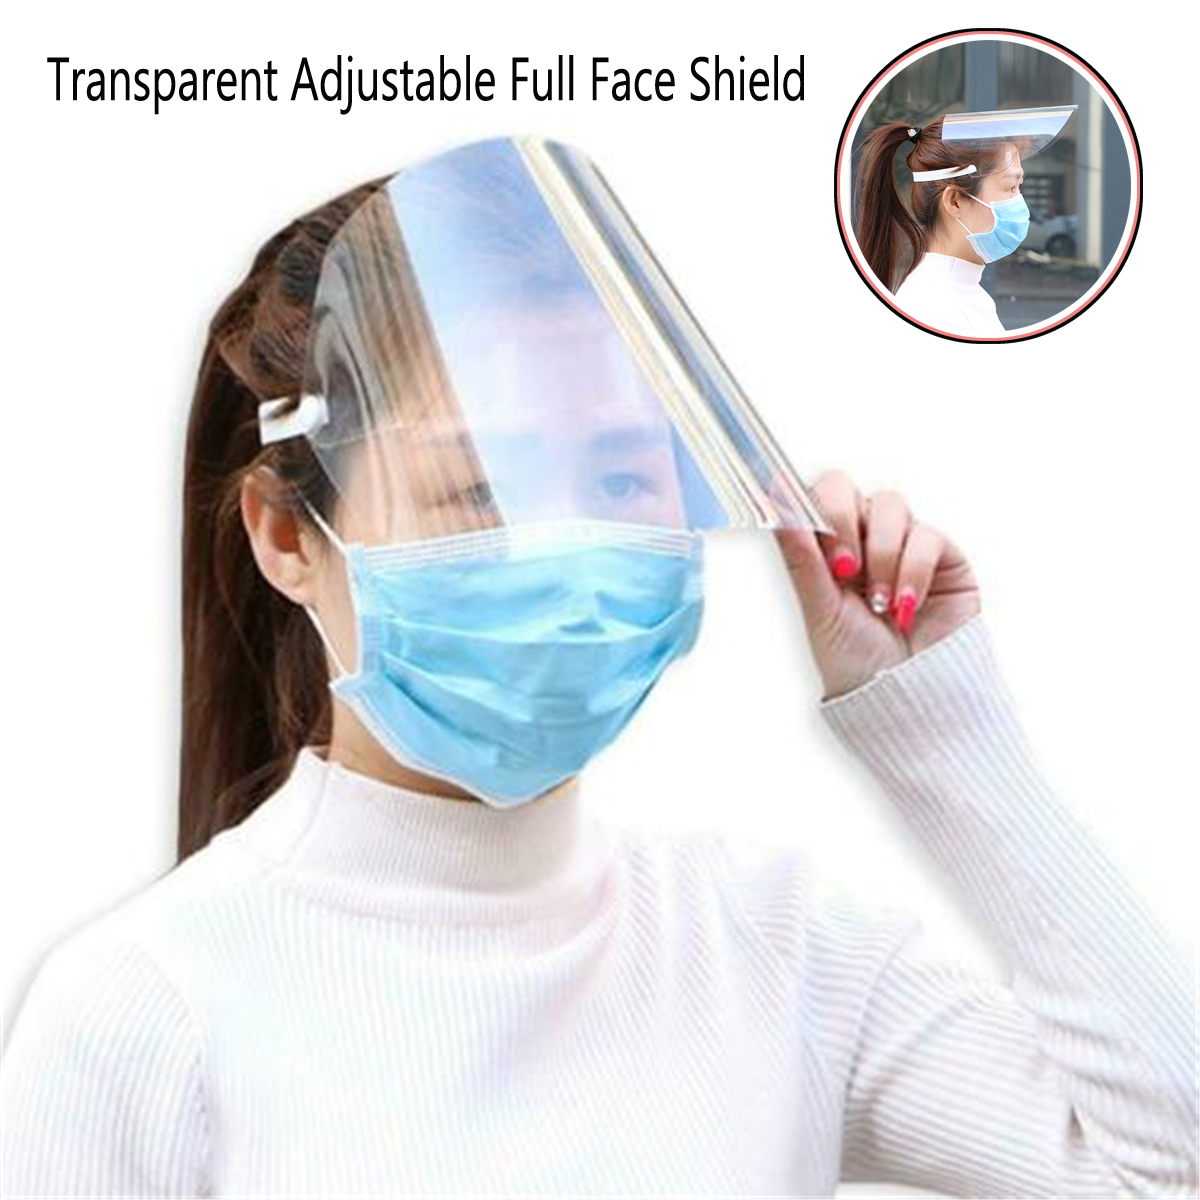 2020 Transparent Anti Droplet Dust-proof Protect Full Face Covering Mask Virus Protection Mask Shield Stop Eye Face Protector